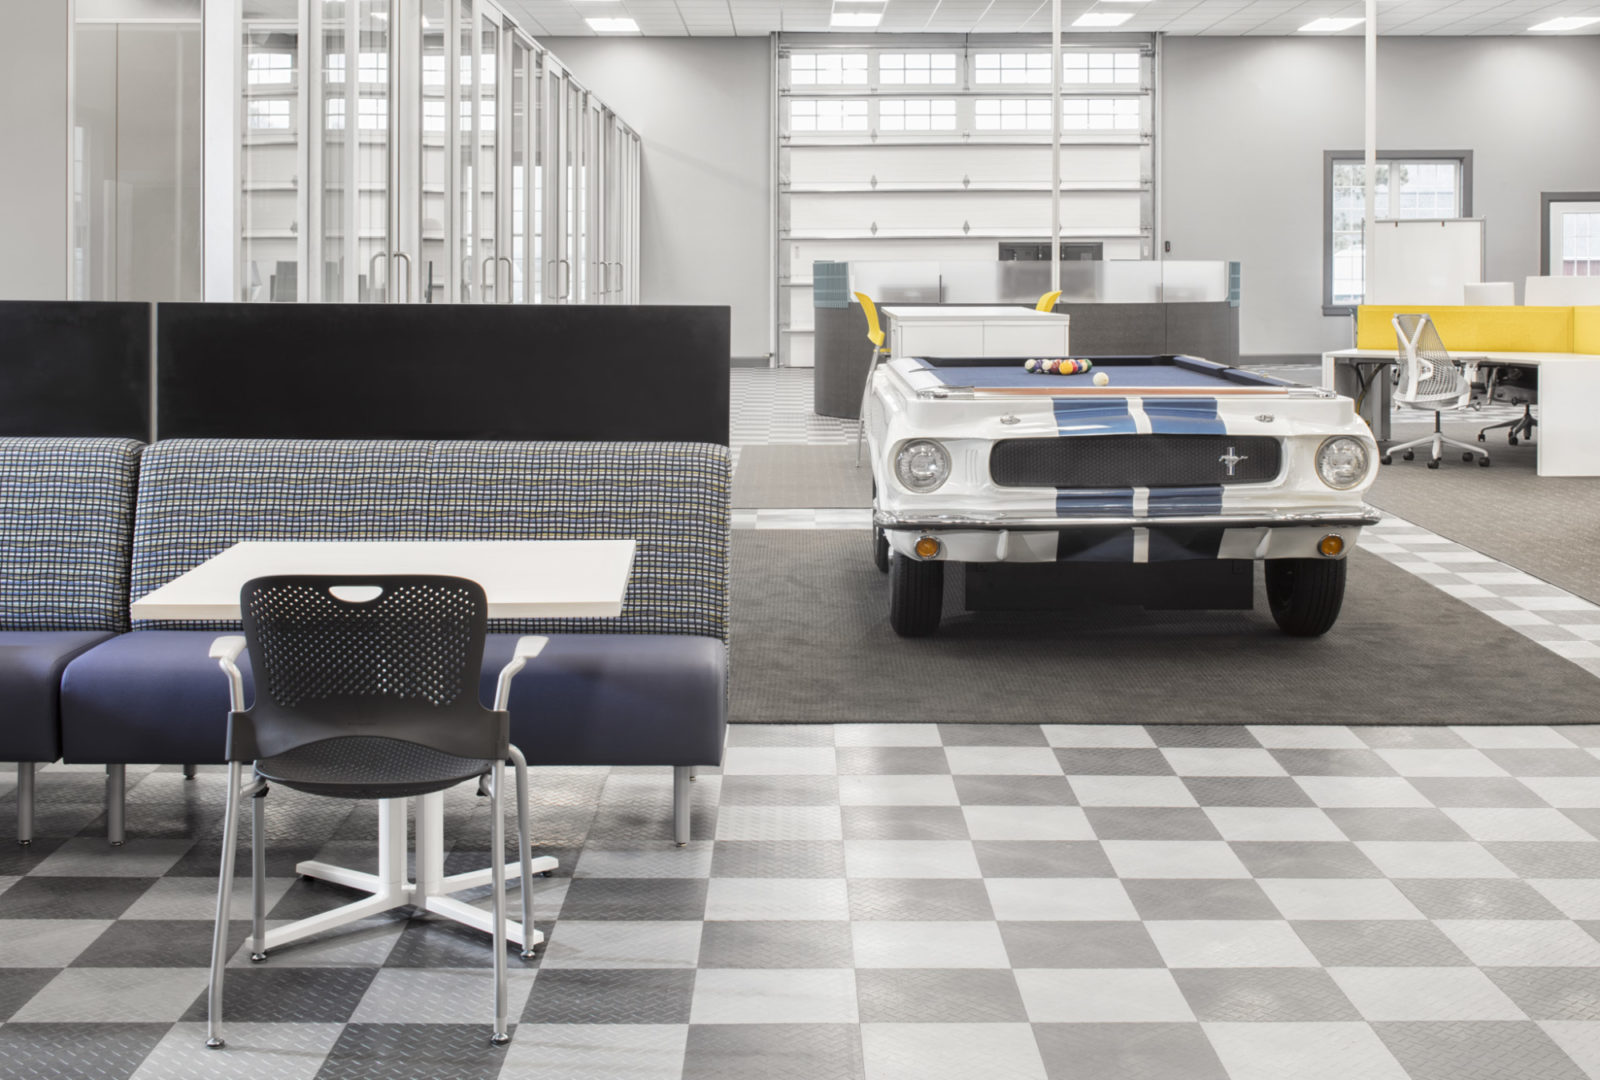 Buzz Creative, Pigott, Herman Miller Furniture, Open Office, Ford Mustang, DIRTT Walls, Sayl Chair, Caper Chair, Metaform Portfolio, Layout Studio